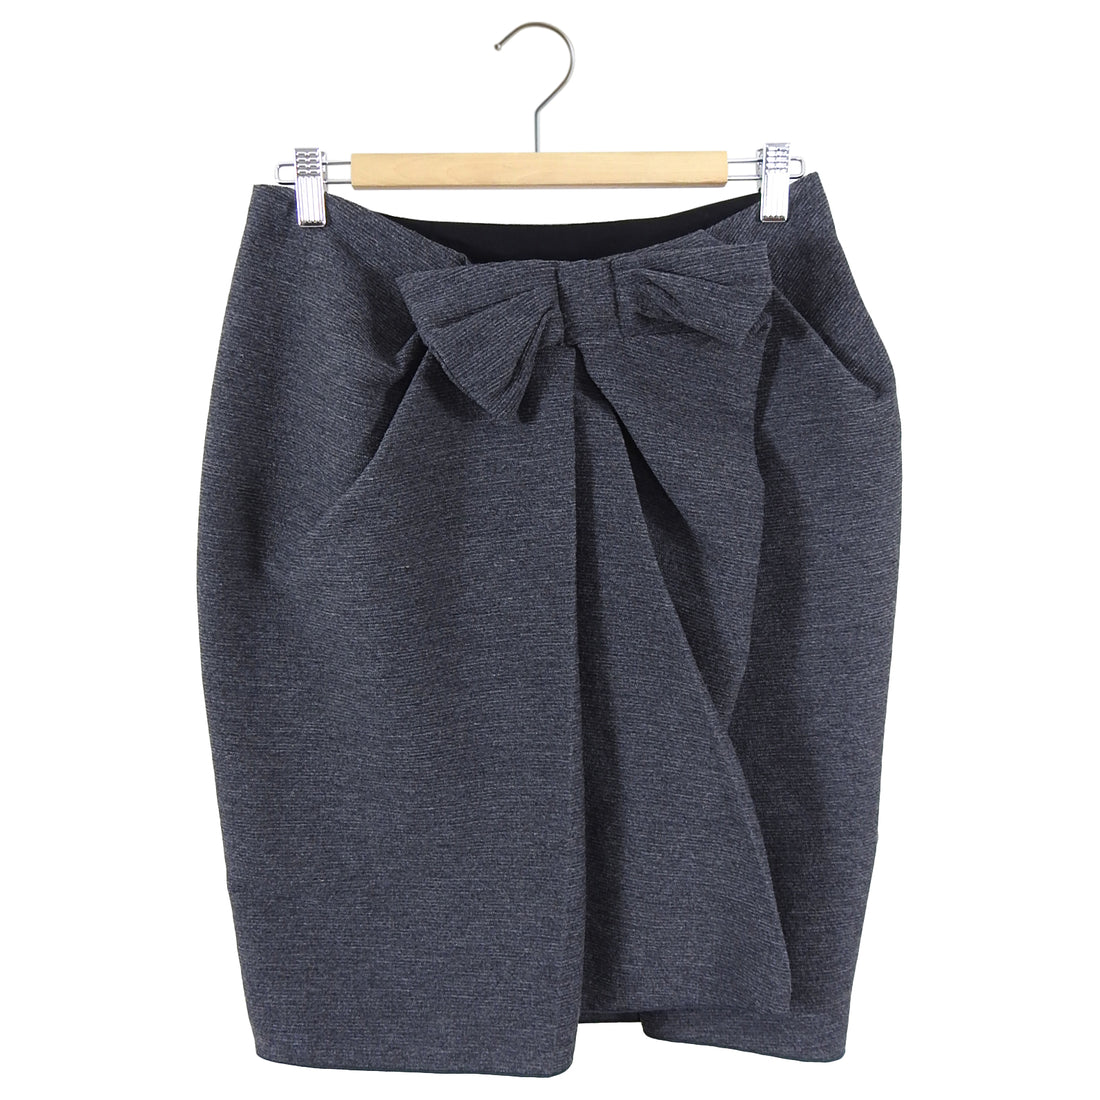 Lanvin Fall 2014 Grey Wrap Bow Detail Skirt - FR38 / 6